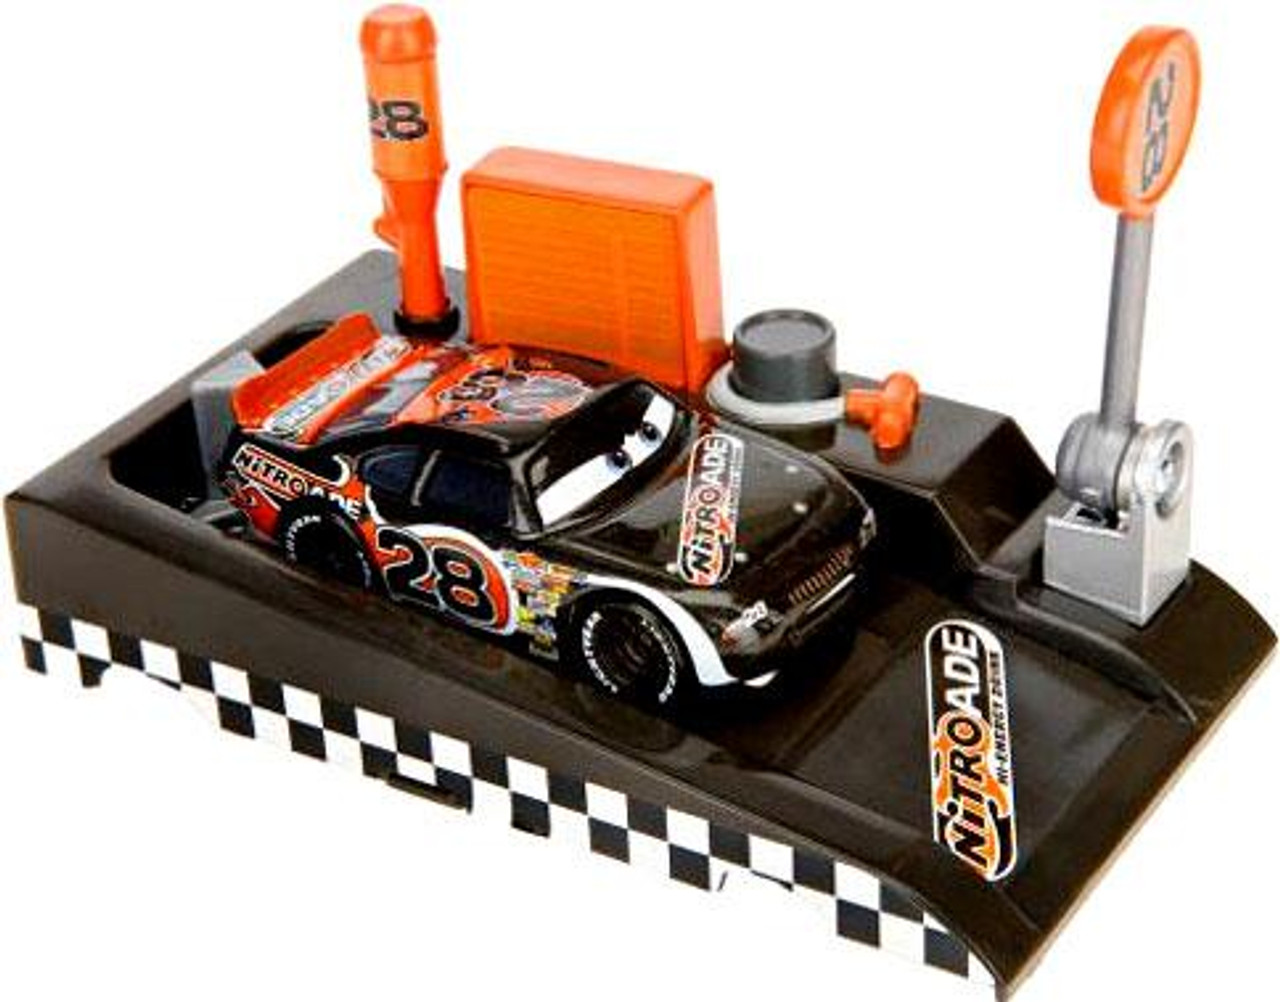 Disney Cars Pit Row Race-Off Nitroade No. 28 Diecast Car [Includes Launcher]